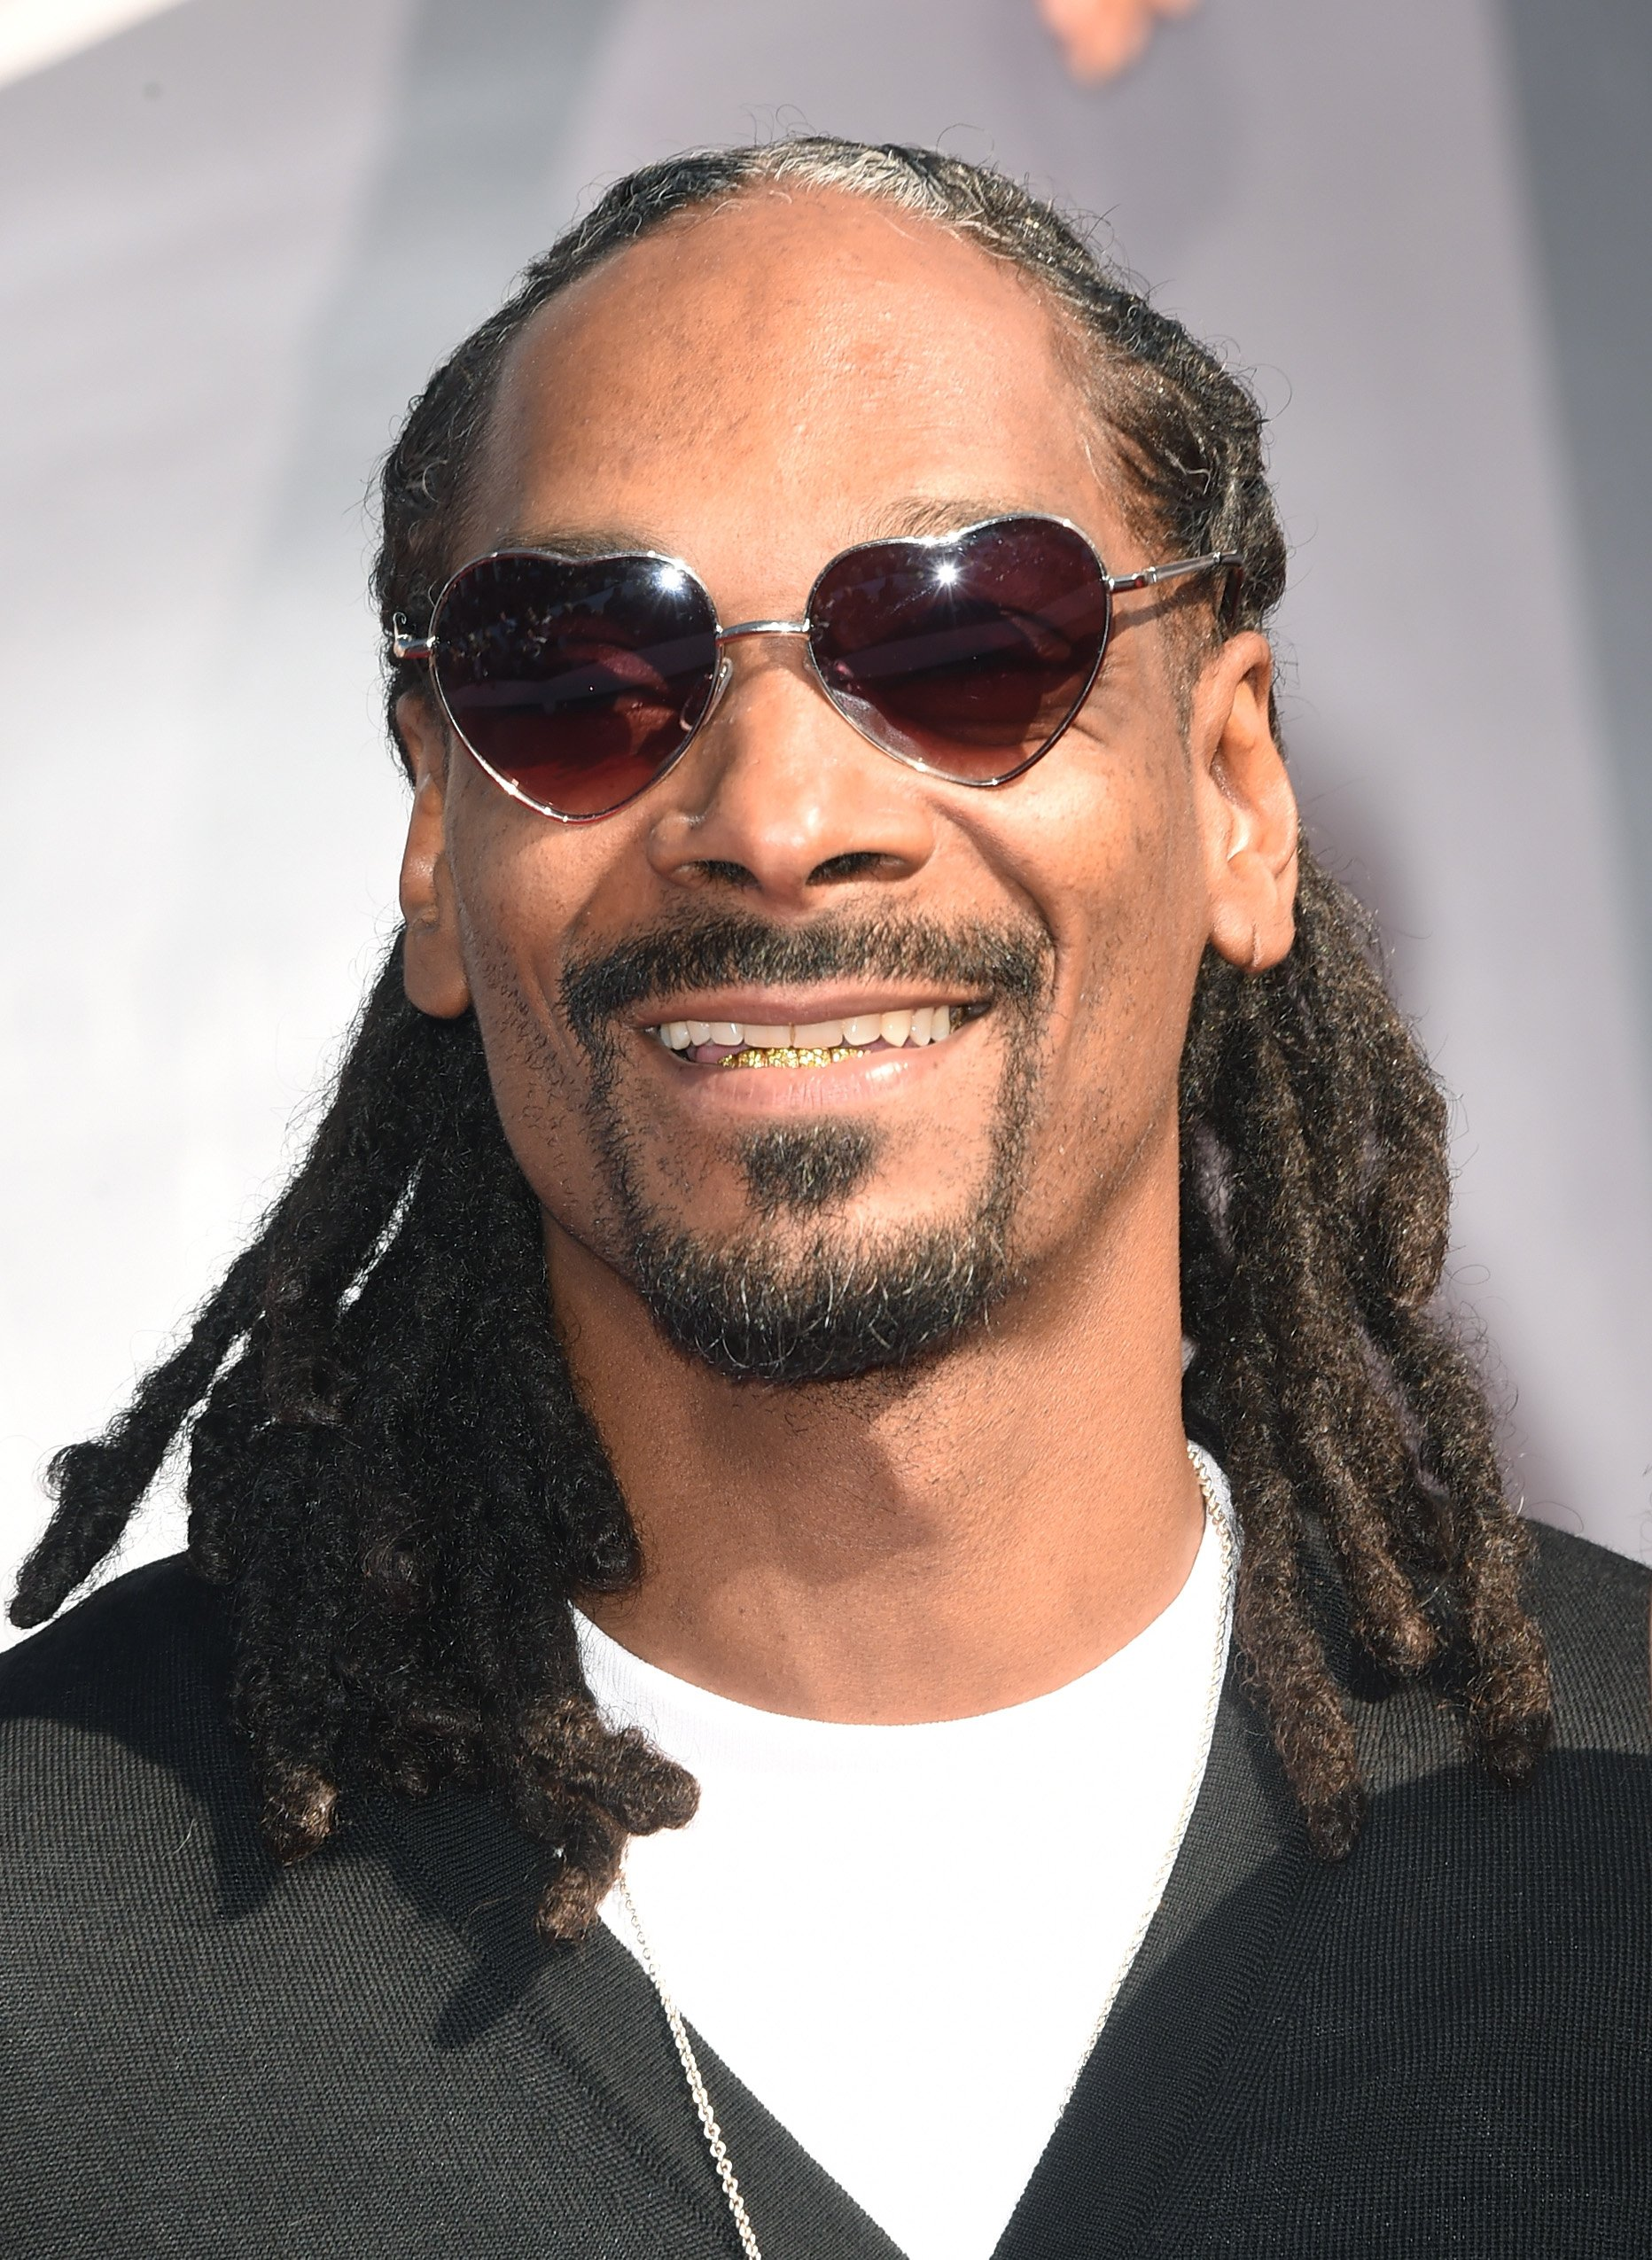 Snoop Dogg attends the 2014 MTV Video Music Awards at The Forum on August 24, 2014. | Source: Getty Images